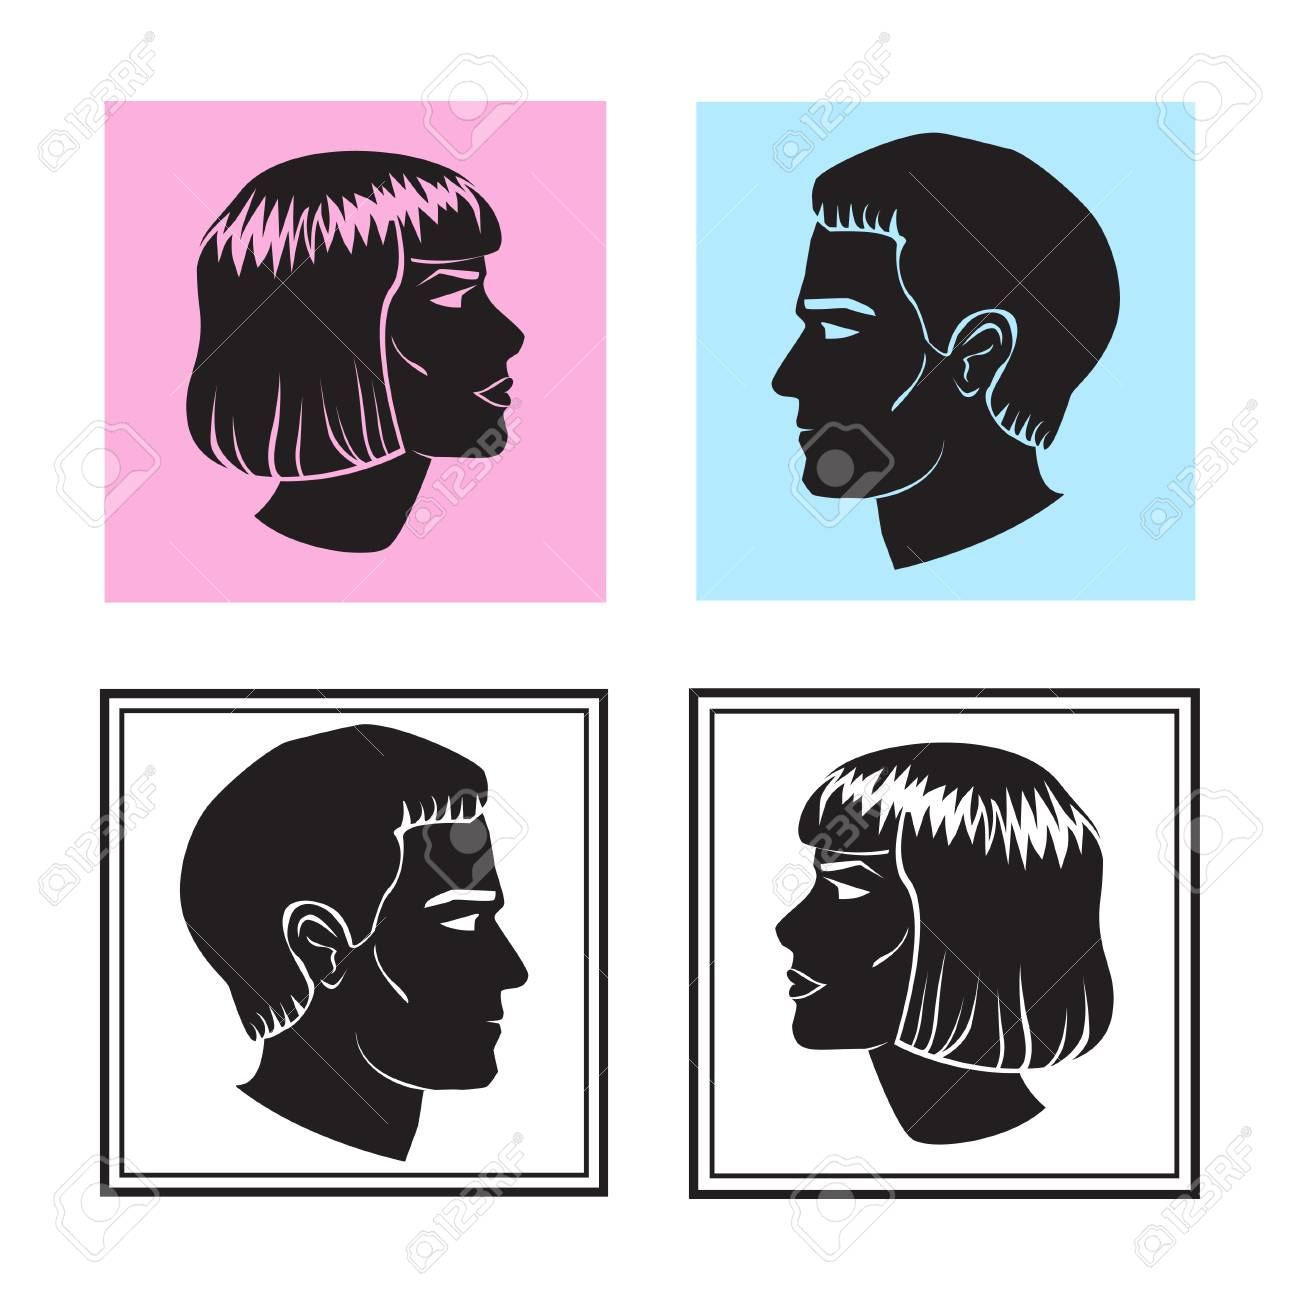 Man And Woman Face Profile Male And Female Silhouette Vector Royalty Free Cliparts Vectors And Stock Illustration Image 72279394